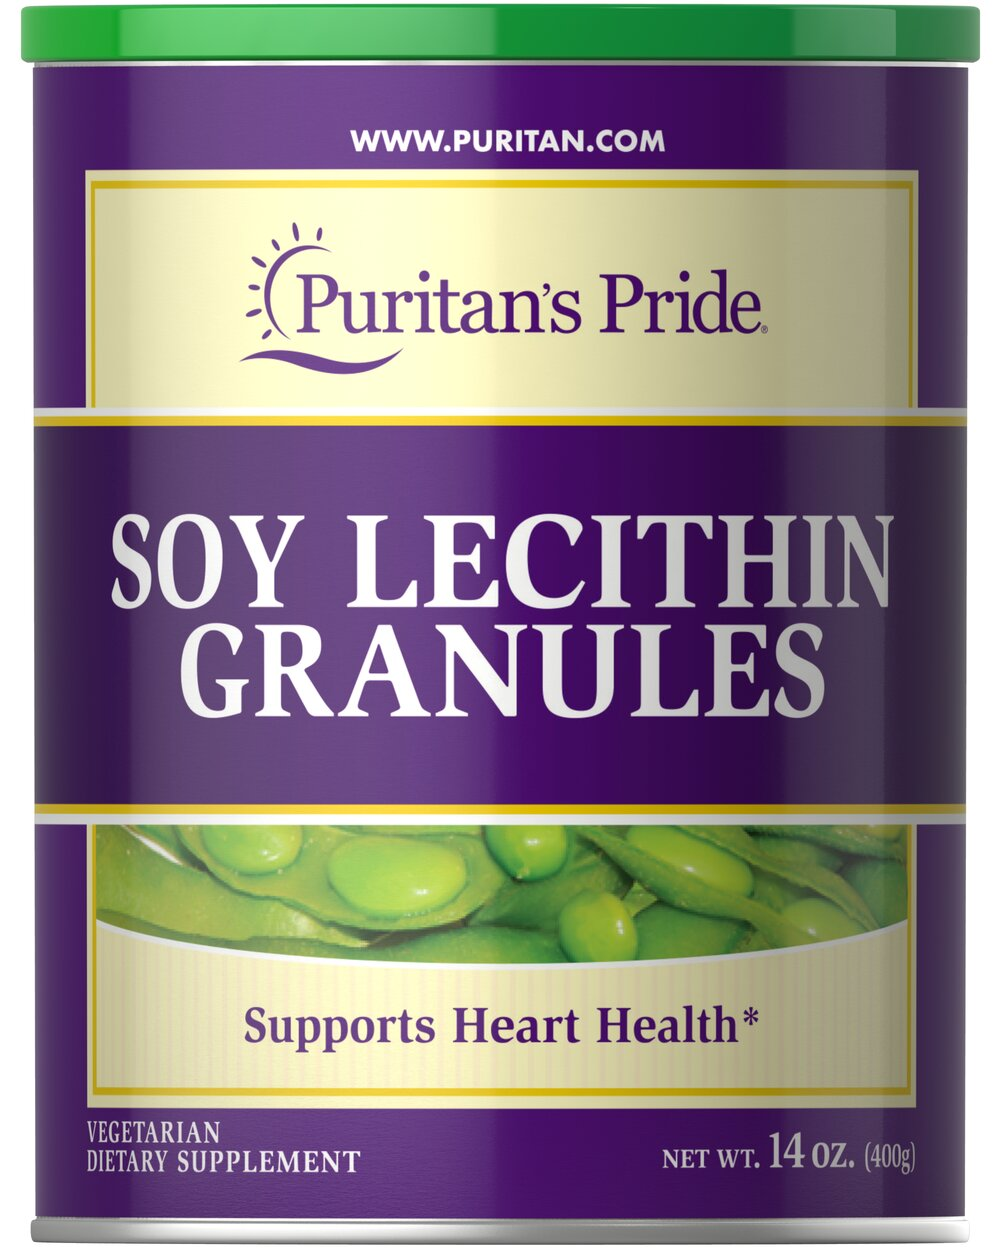 Soy Lecithin Granules 1680 mg <p>95% SOY PHOSPHATIDES </p><p>Finest Quality</p><p>Supports Mental Function & Nerve Cell Health**</p><p>Lecithin is an important natural source of choline, inositol, and linoleic acid. Choline and Inositol are vital components of all cell membranes, and play important roles in cell growth and function.**</p> 14 oz Granules 1680 mg $16.99